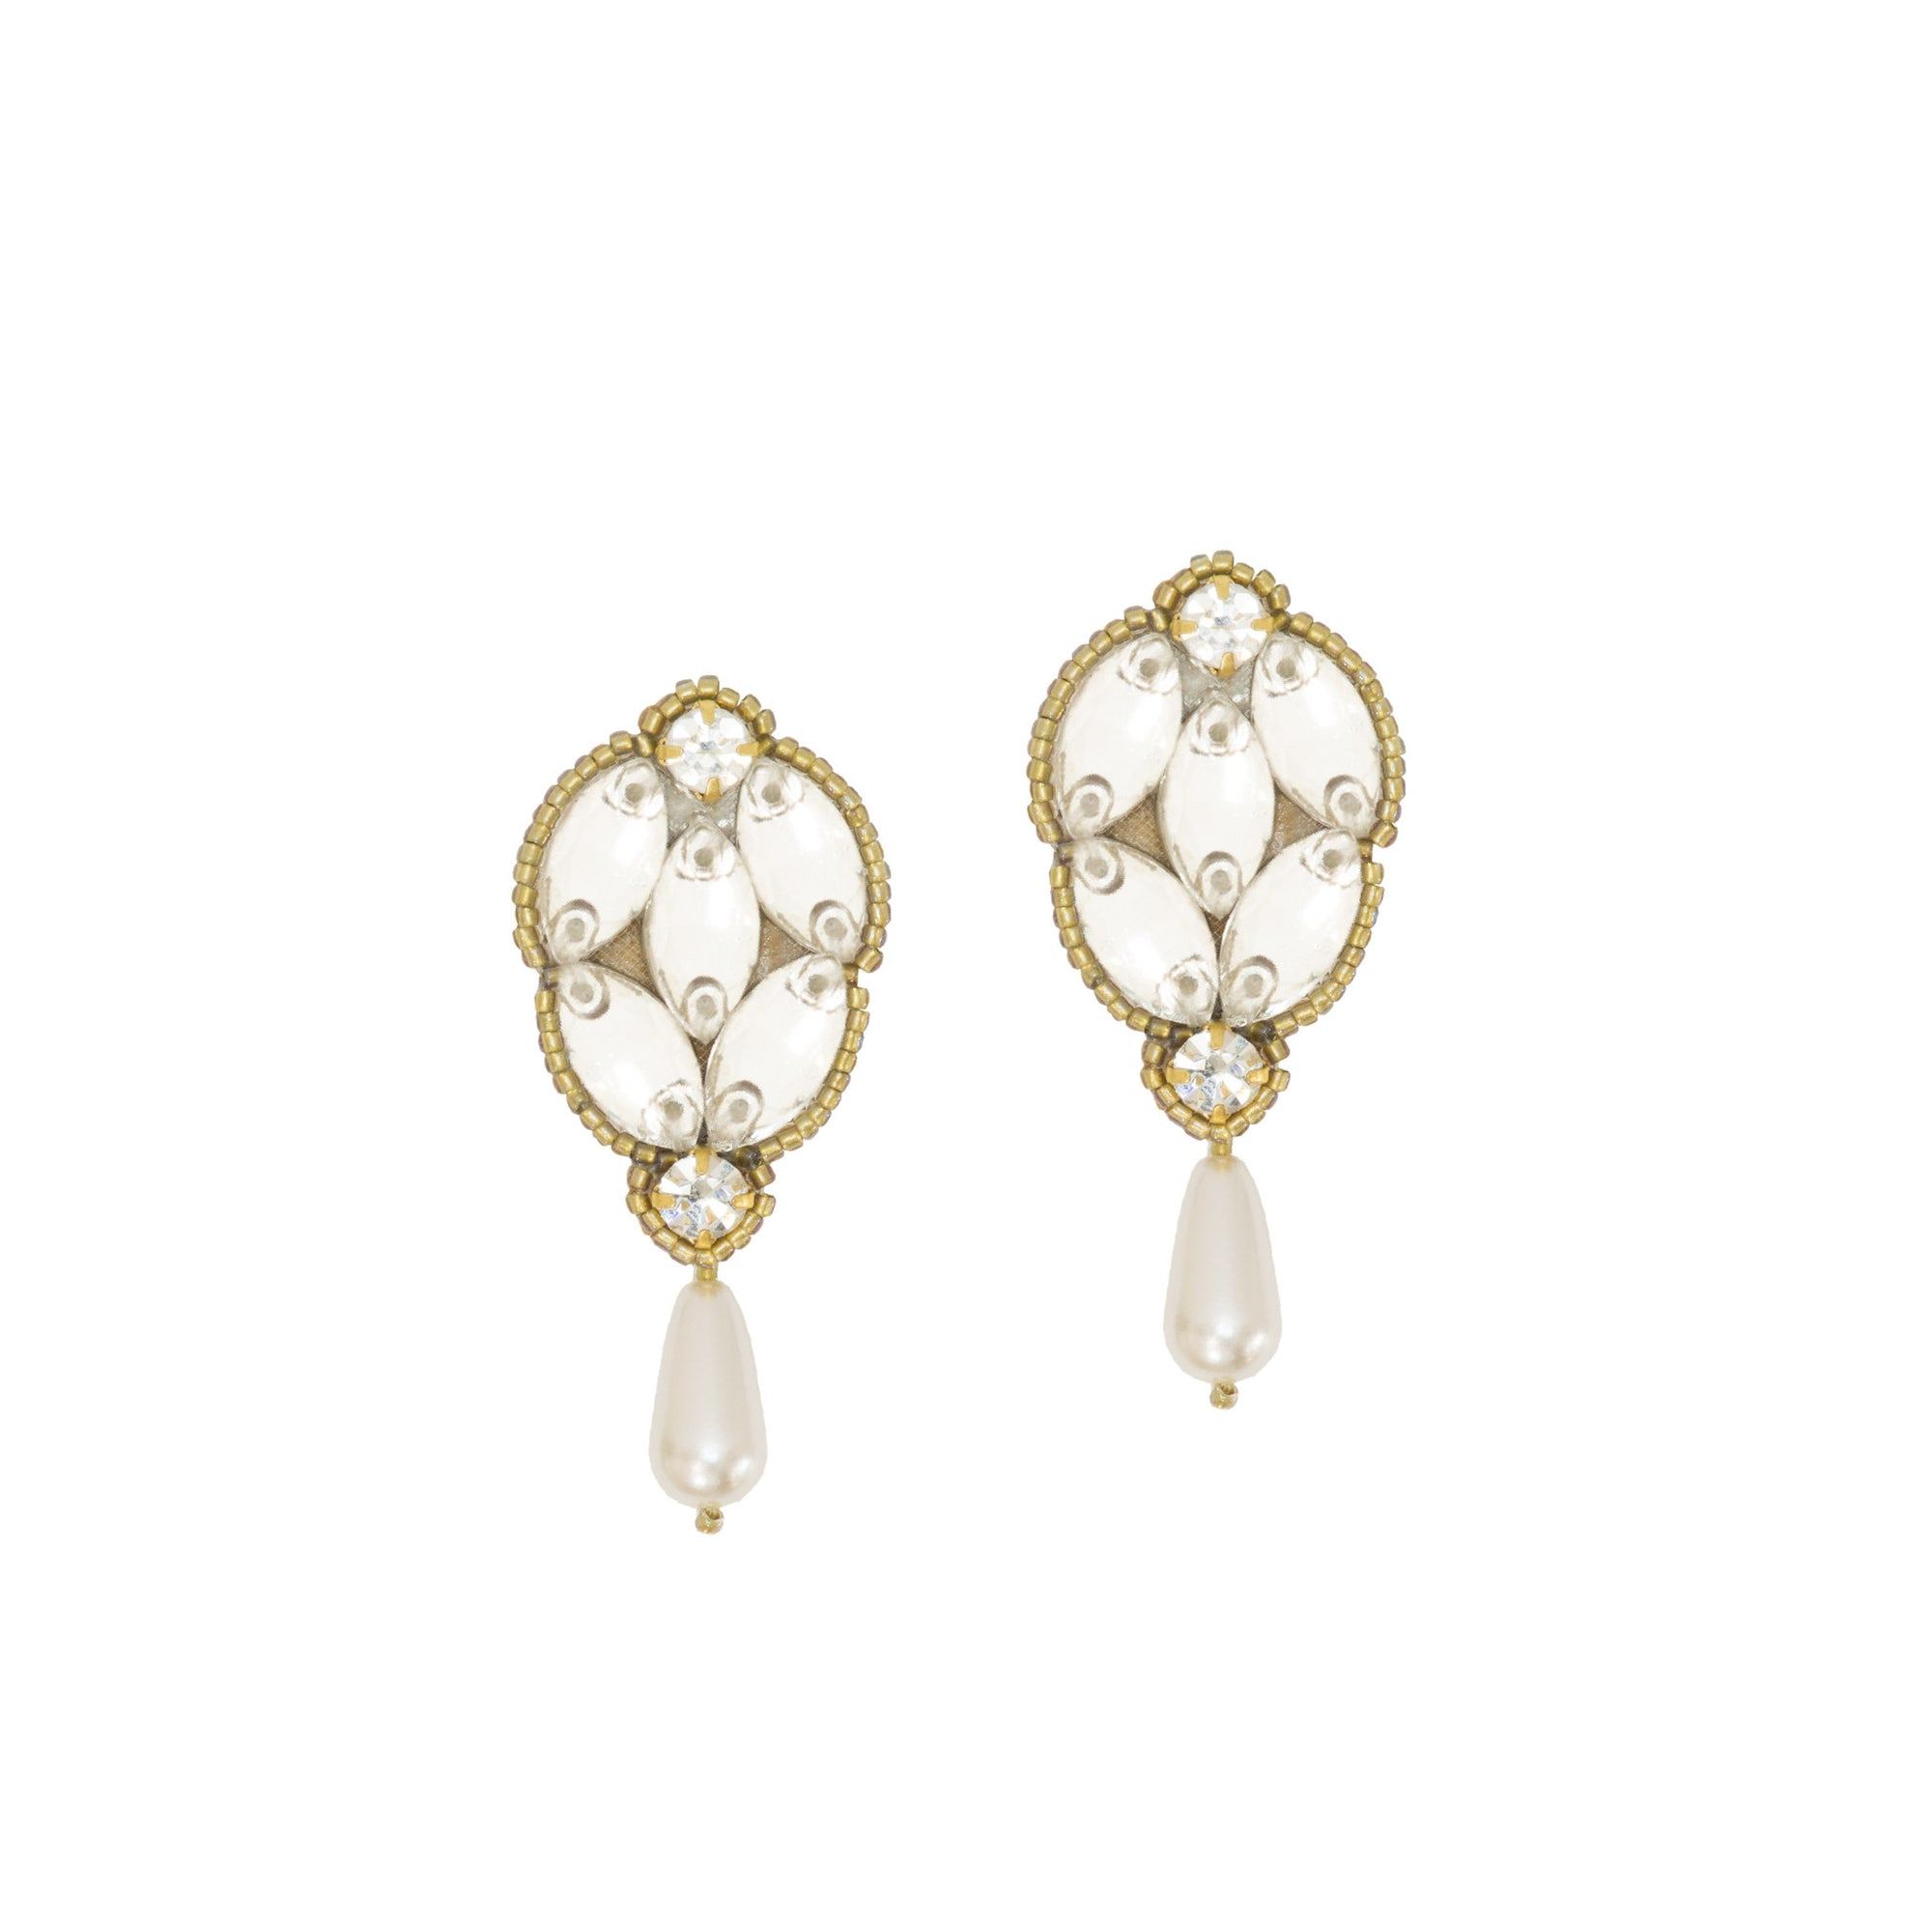 A review of our Statement Gold Wedding Earrings- Saffie